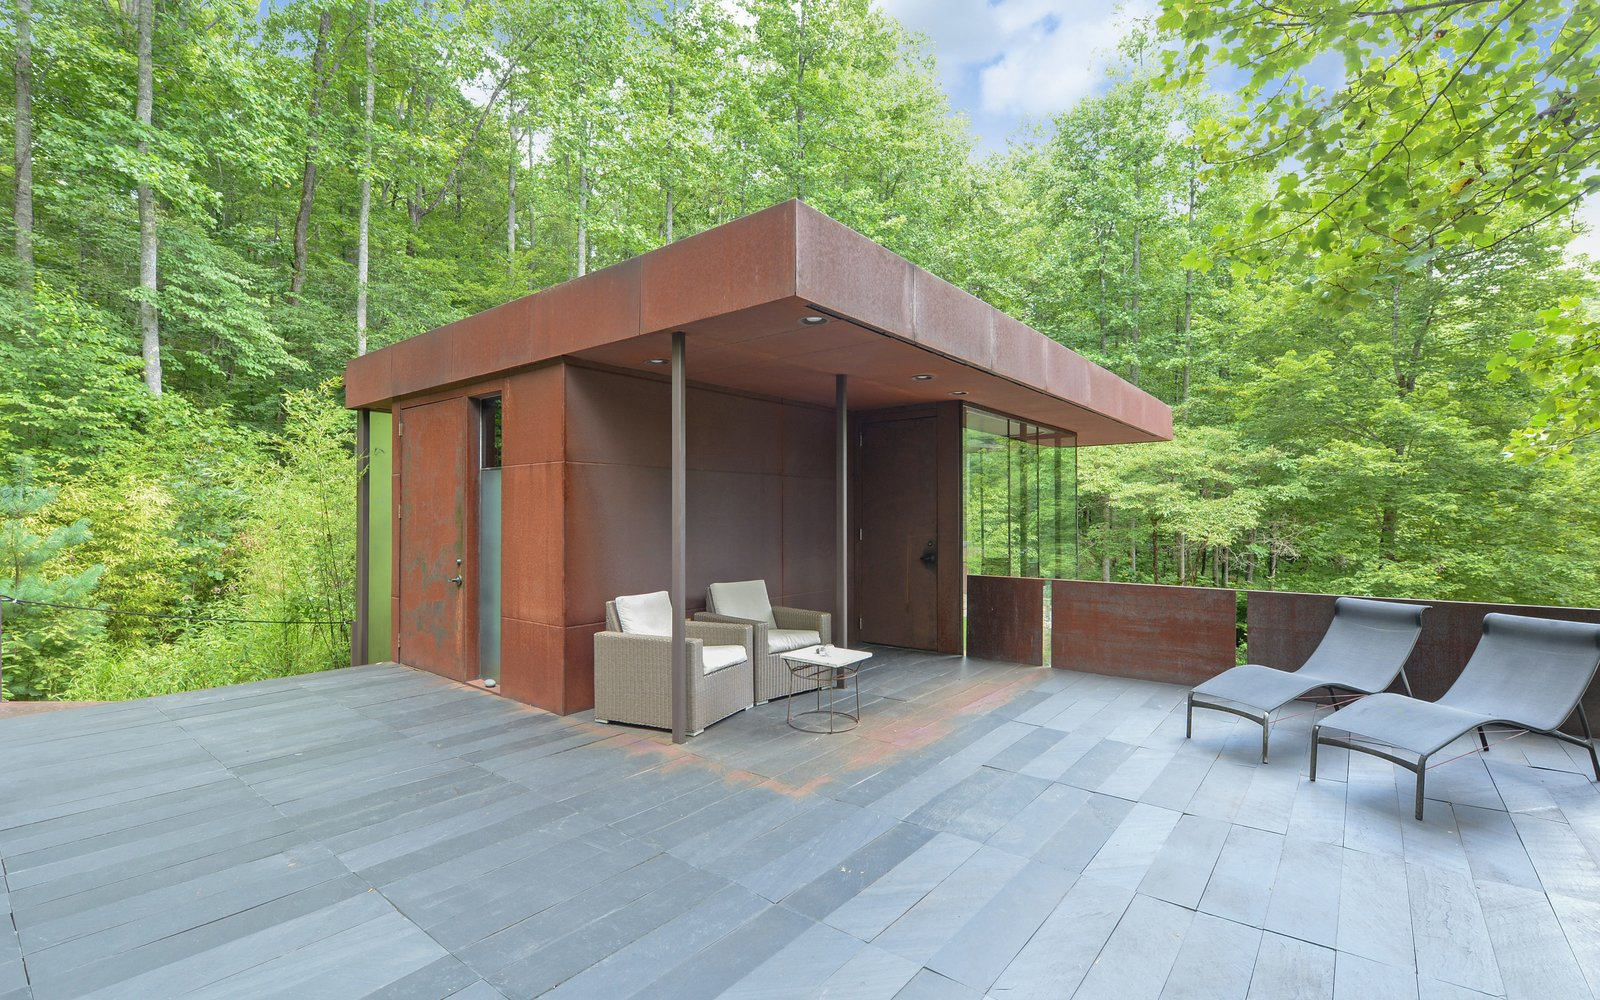 'Tree House' - Terrace Tagged: Rooftop, Metal Patio, Porch, Deck, Stone Patio, Porch, Deck, Metal Fences, Wall, Exterior, Metal Roof Material, and Metal Siding Material.  Mountain House Modern by Sarah Gillespie - The Lake Team